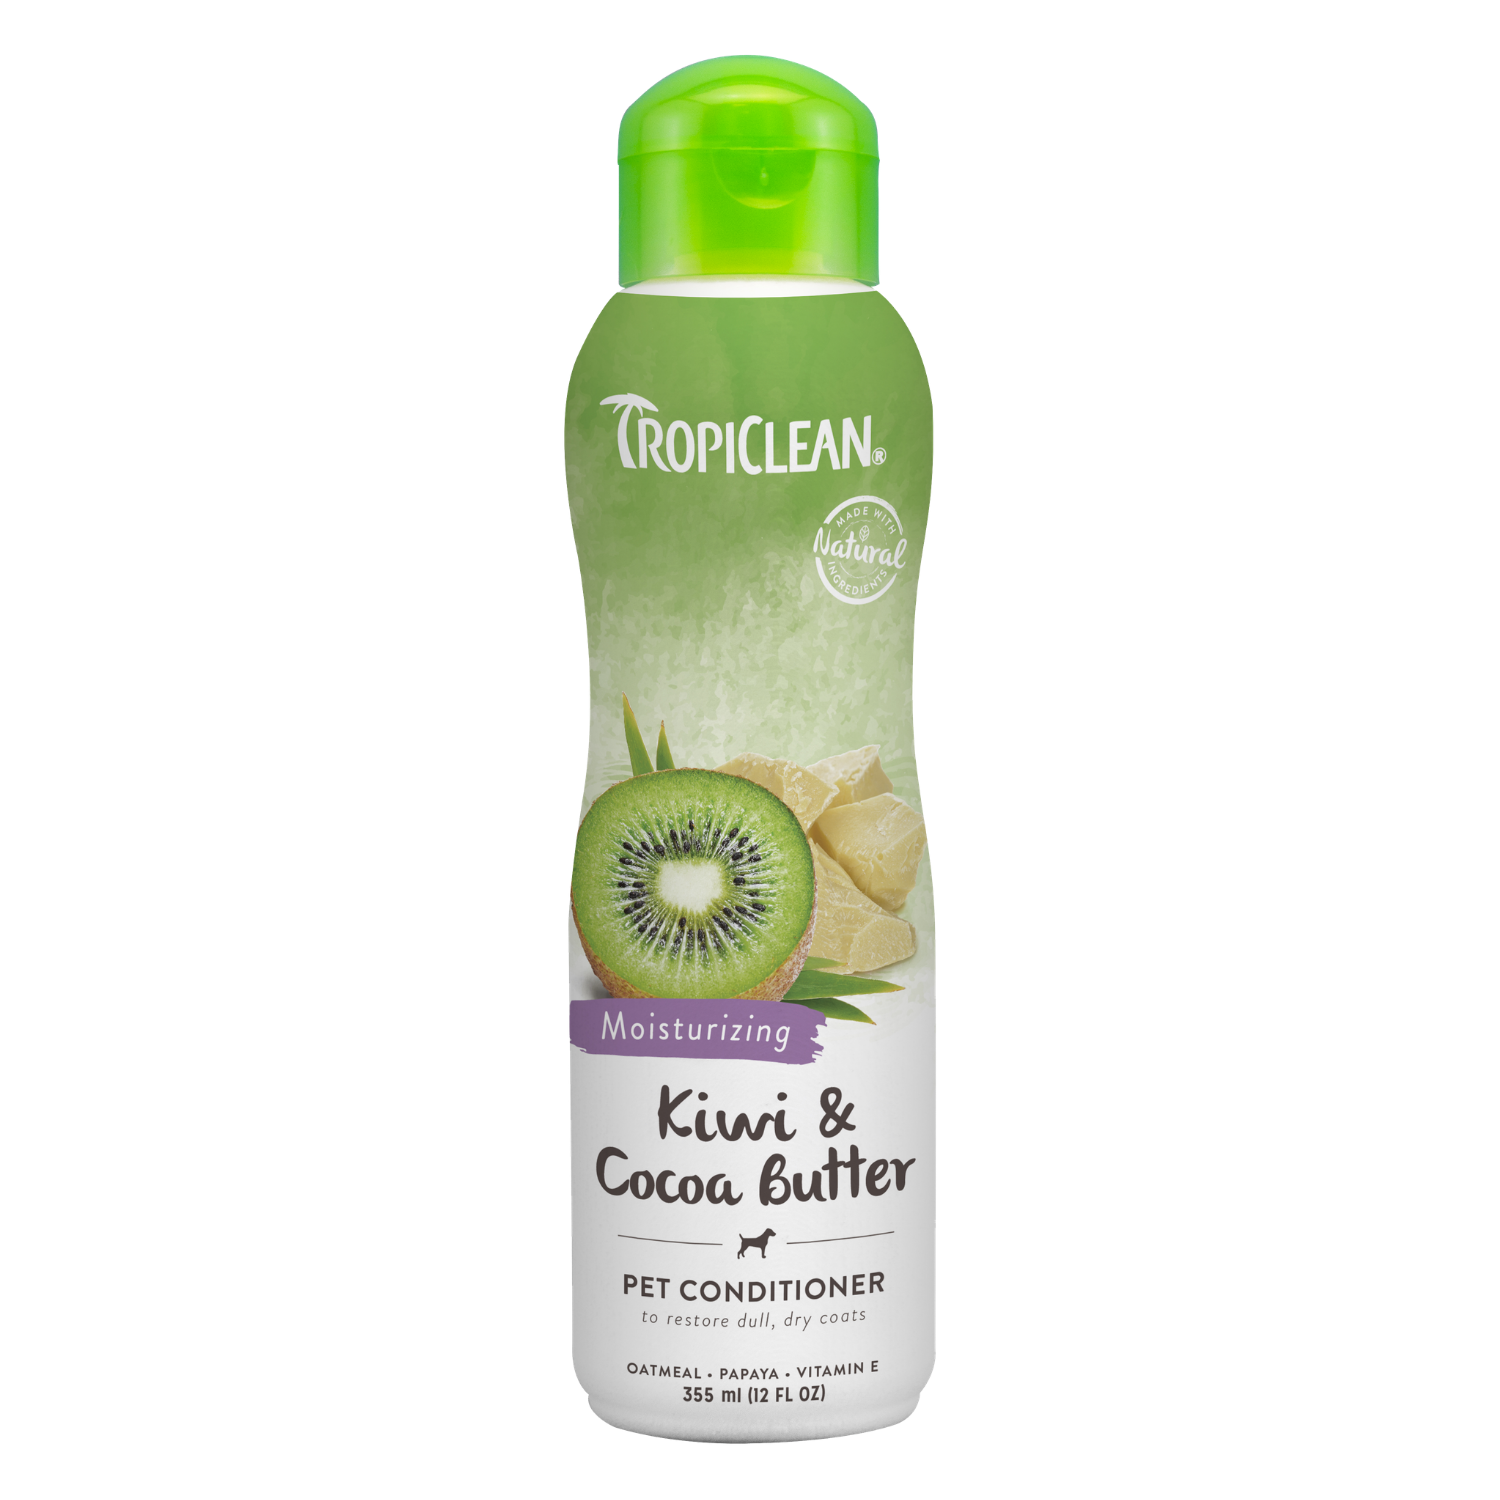 Tropiclean Kiwi & Cocoa Butter Pet Conditioner (Moisturising) - 355ml / 3.79L